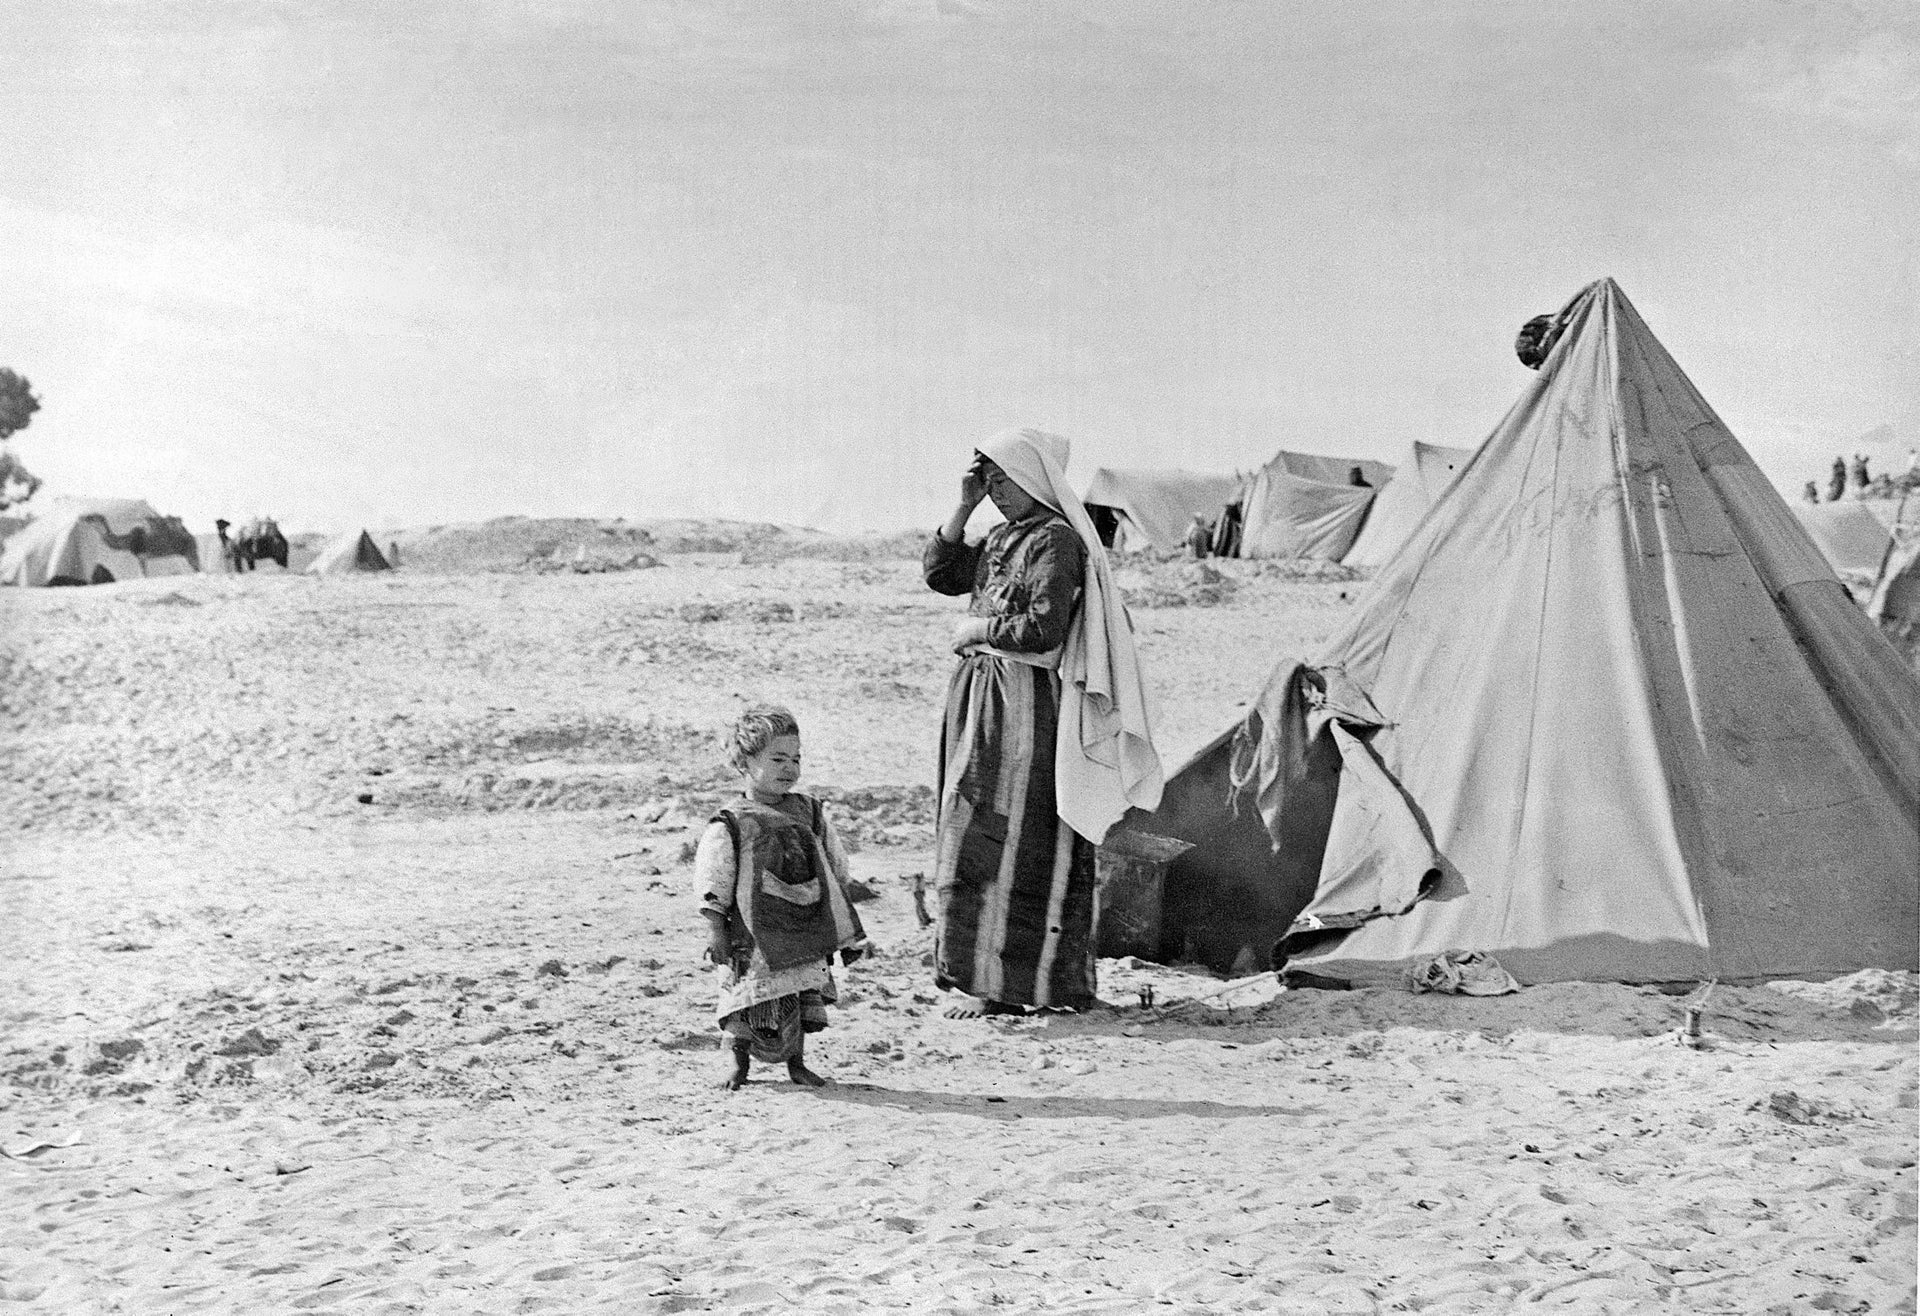 In this 1948 photo from the UN Relief and Works Agency, UNRWA, archive, Palestinian refugees stand outside their tent in Khan Younis, Gaza Strip.